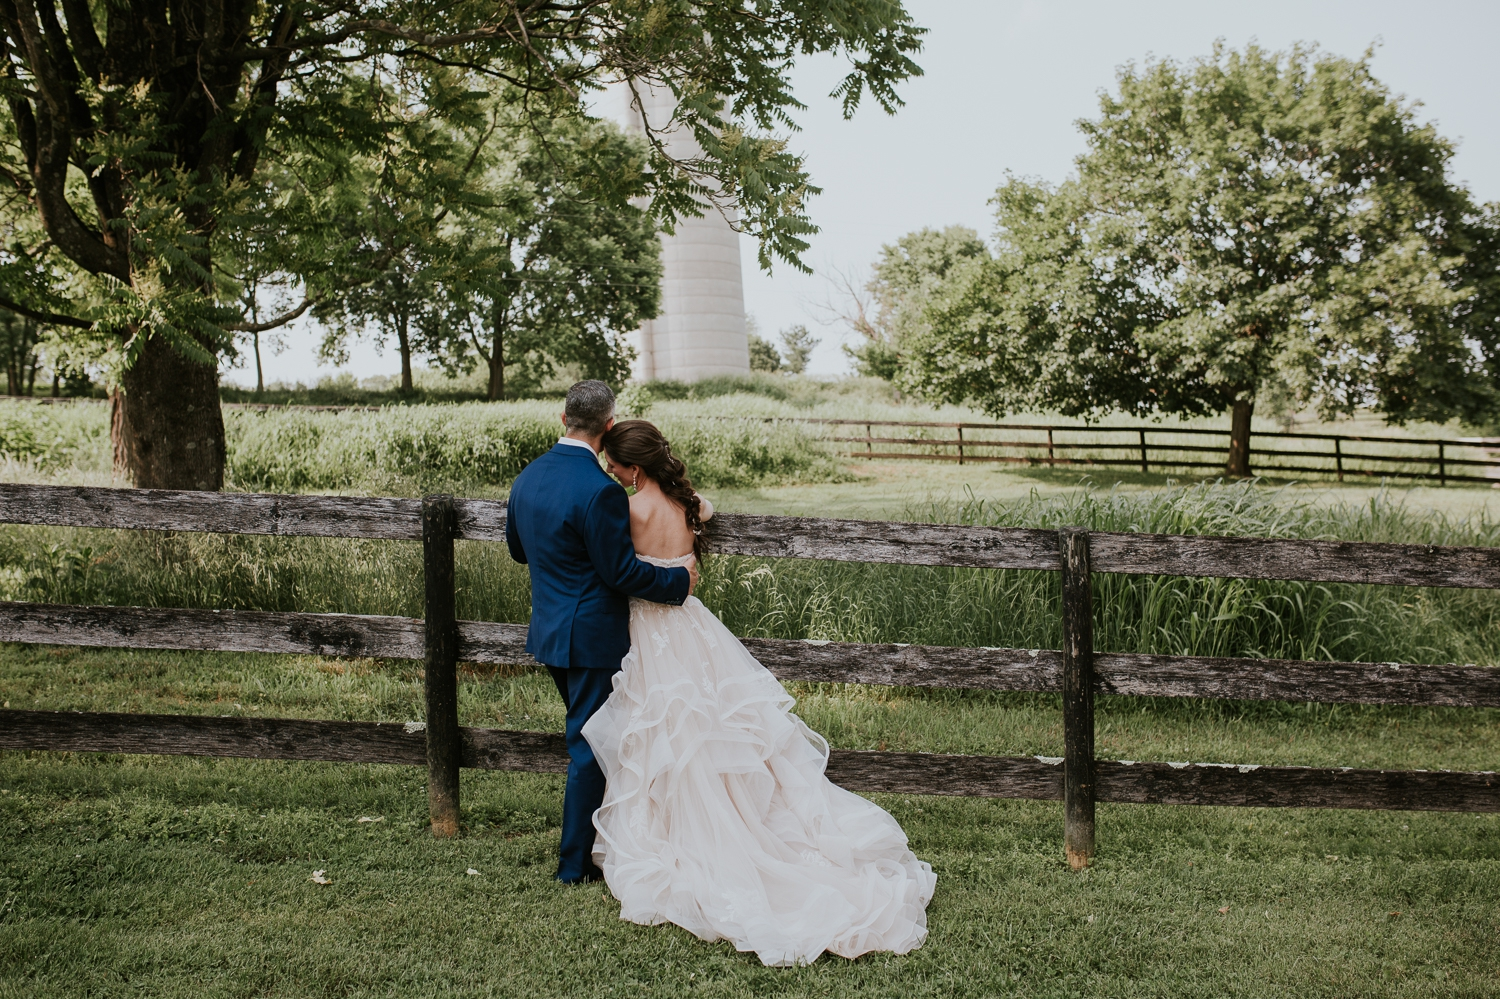 purceville-virginia-tranquility-farms-wedding-photography-planning-coordination 41.jpg